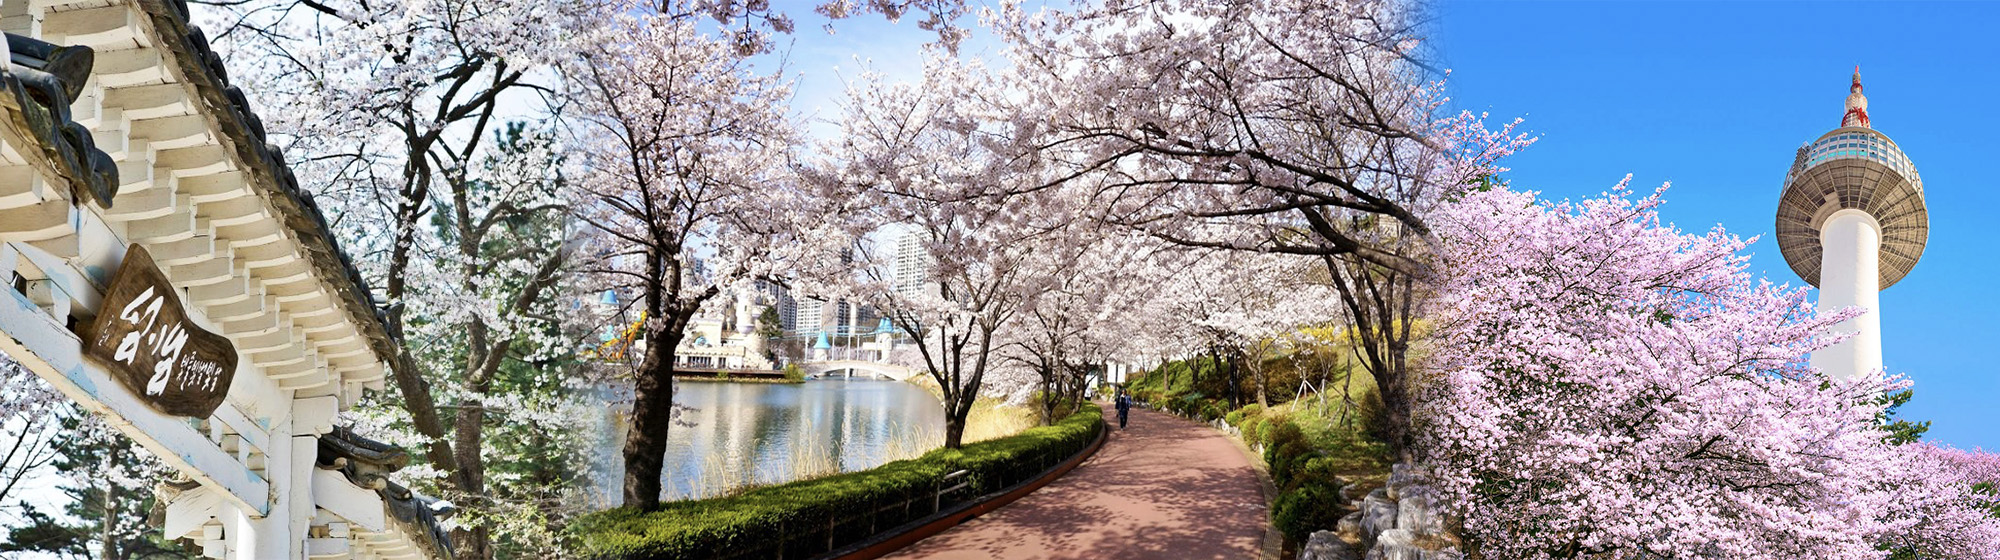 Seoul and Nami Cherry Blossom Festival 1day Shuttle Bus including Tour Guide and PICK UP (Apr. 1~26) | KoreaTravelEasy